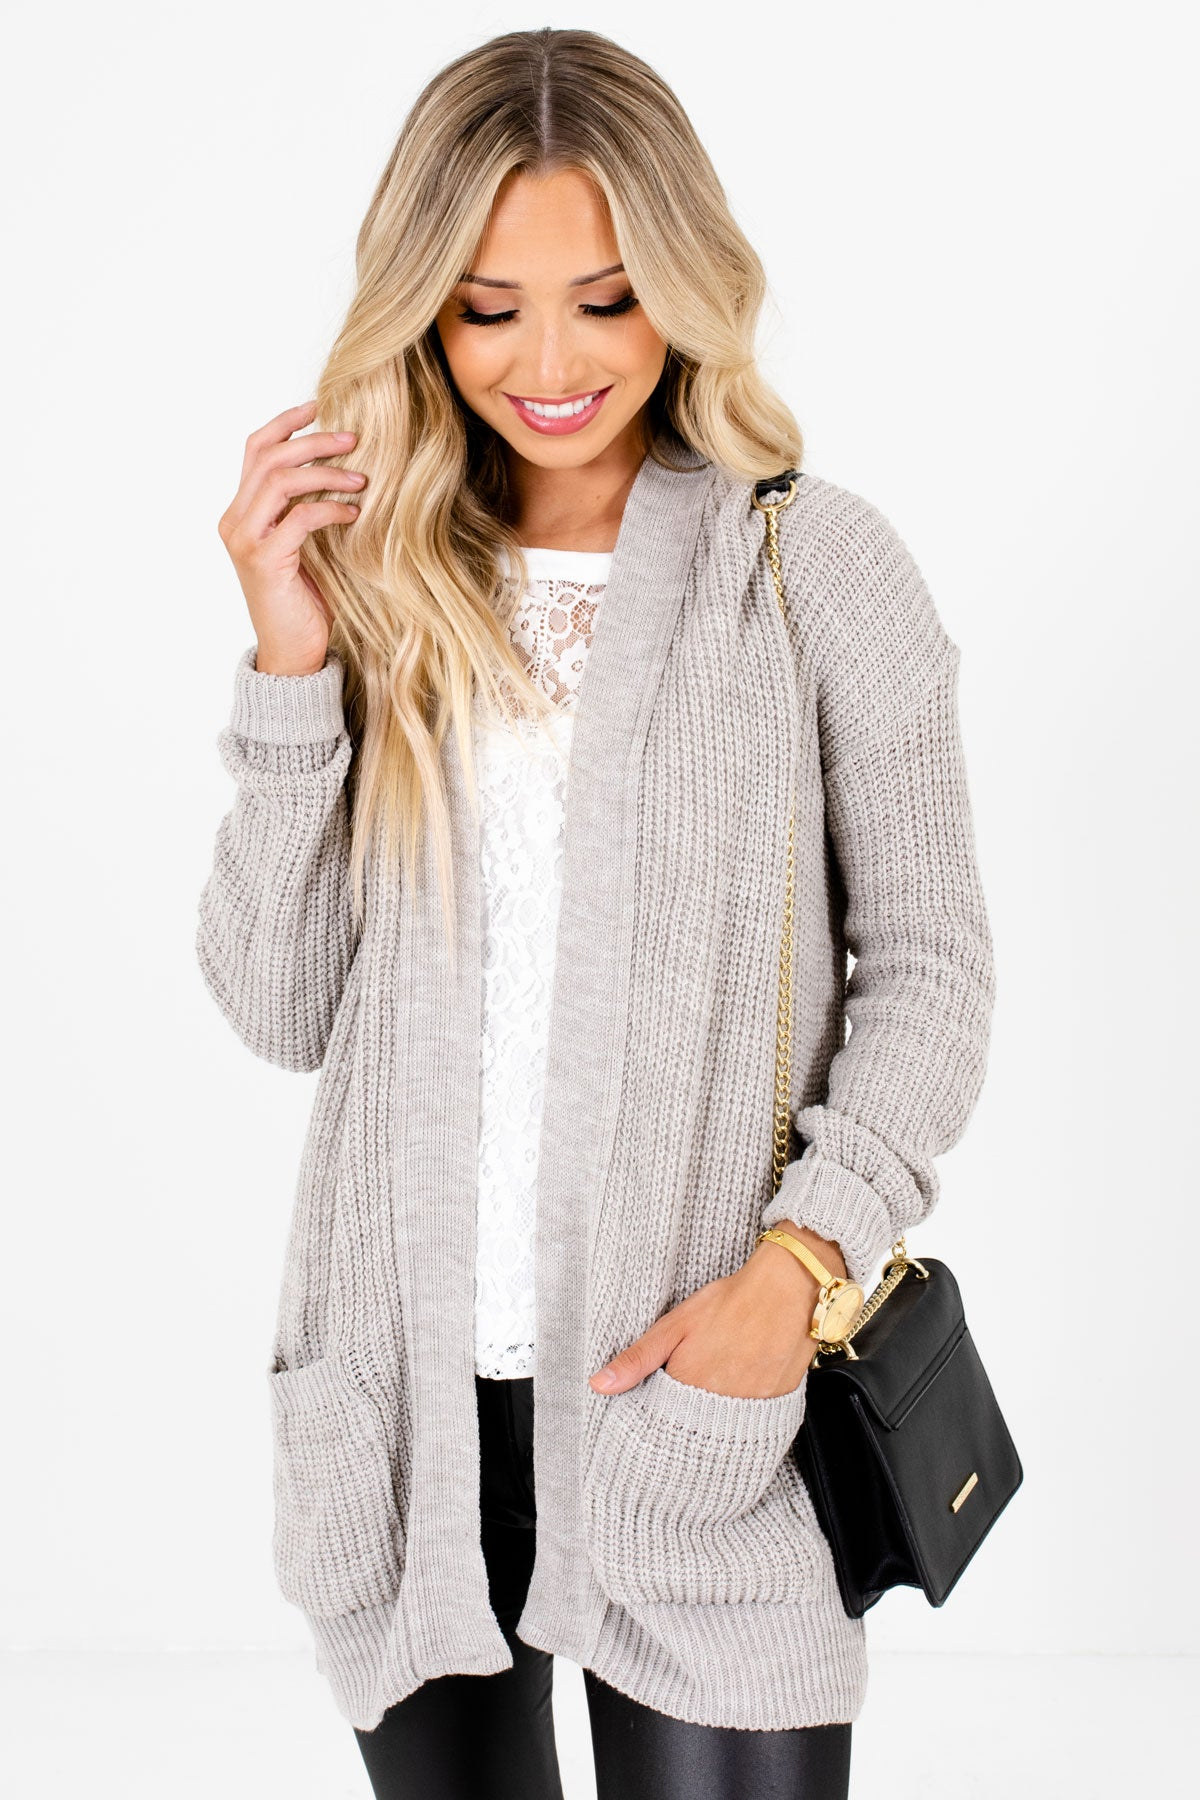 Heather Gray High-Quality Knit Material Boutique Cardigans for Women